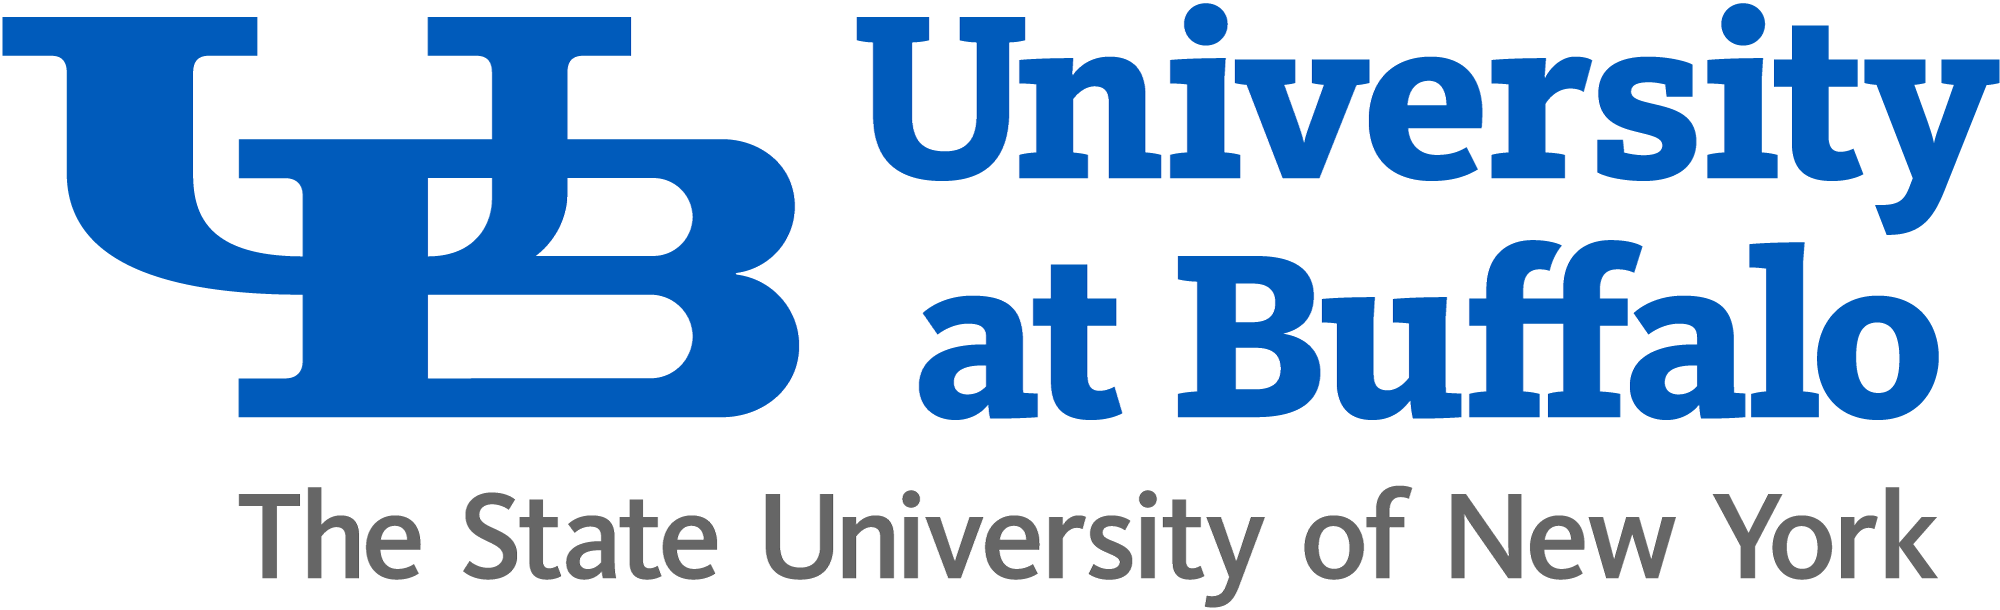 UB_Secondary_SUNY copy.png